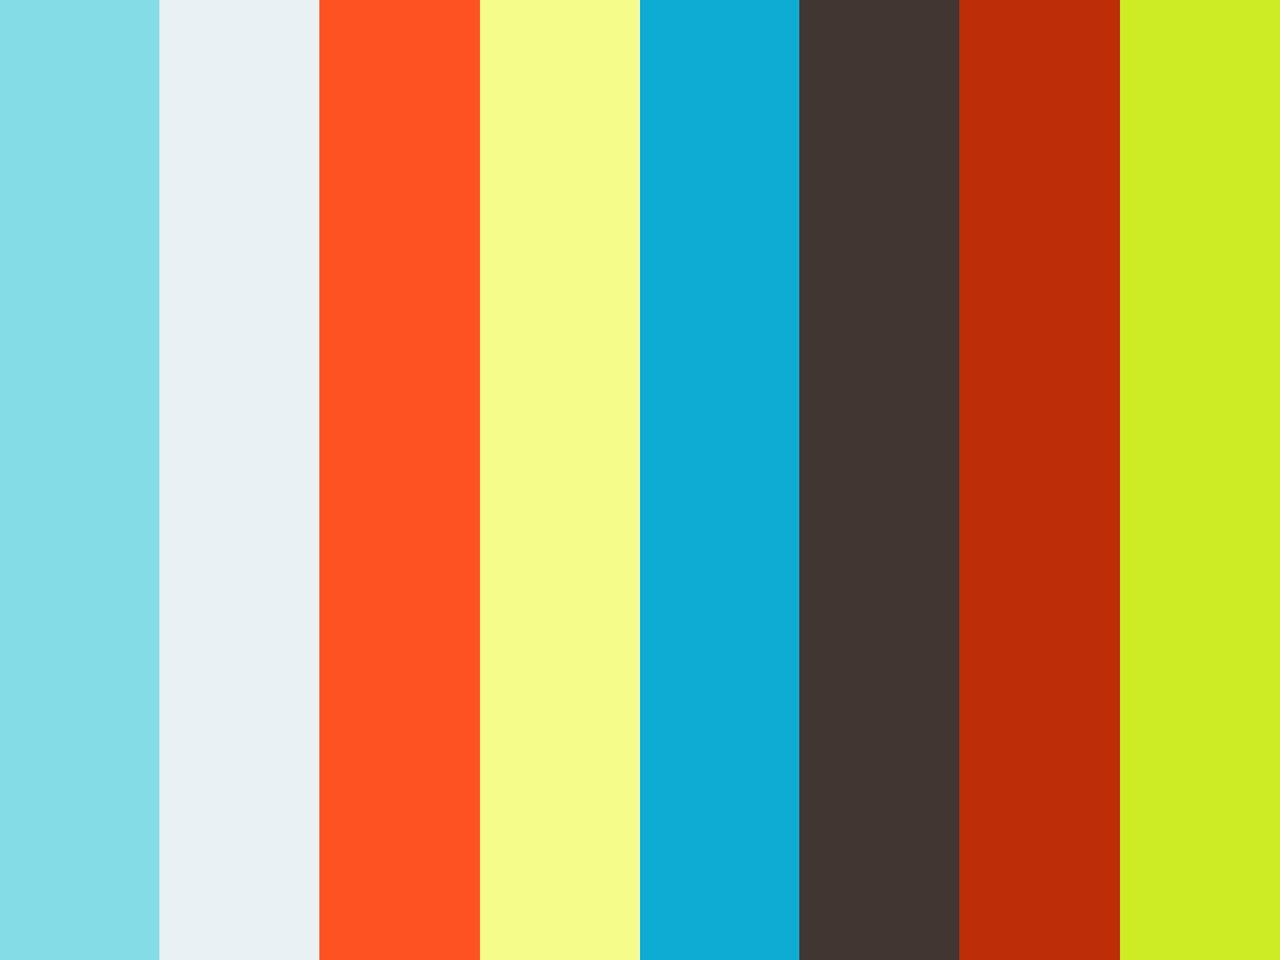 Double Line Graph Examples On Vimeo